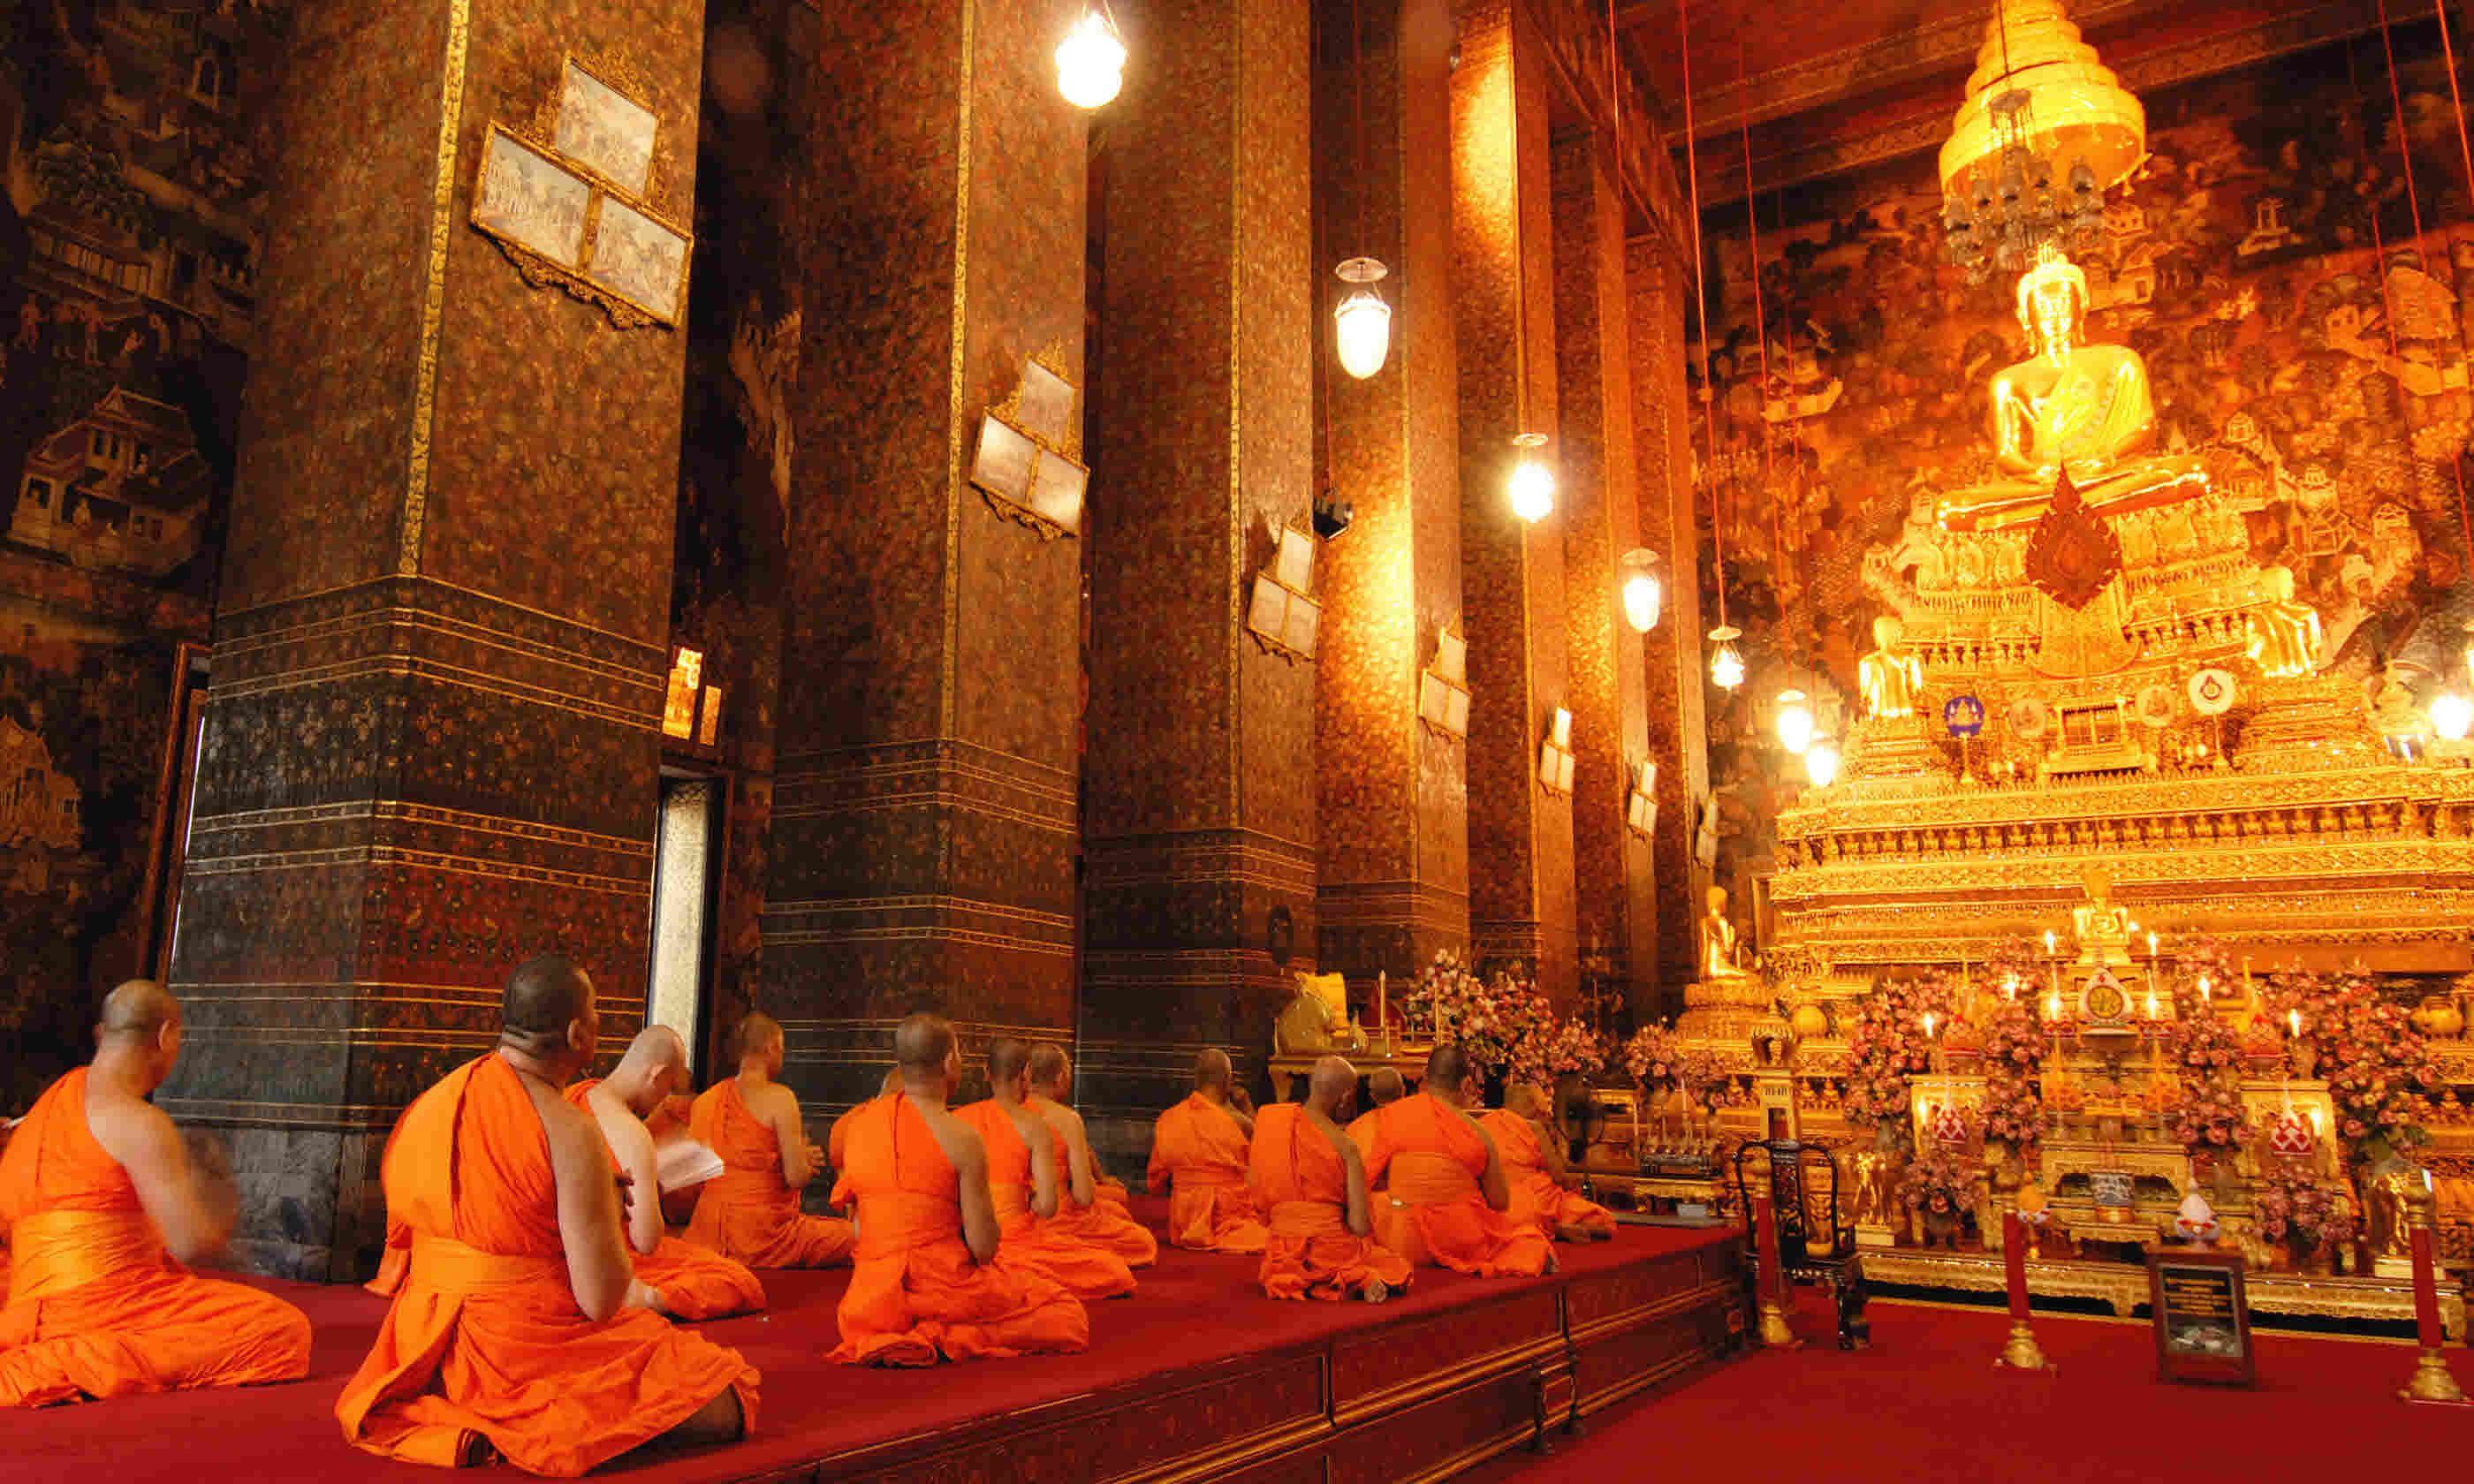 Monks in Wat Pho Temple, Bangkok (Shutterstock)